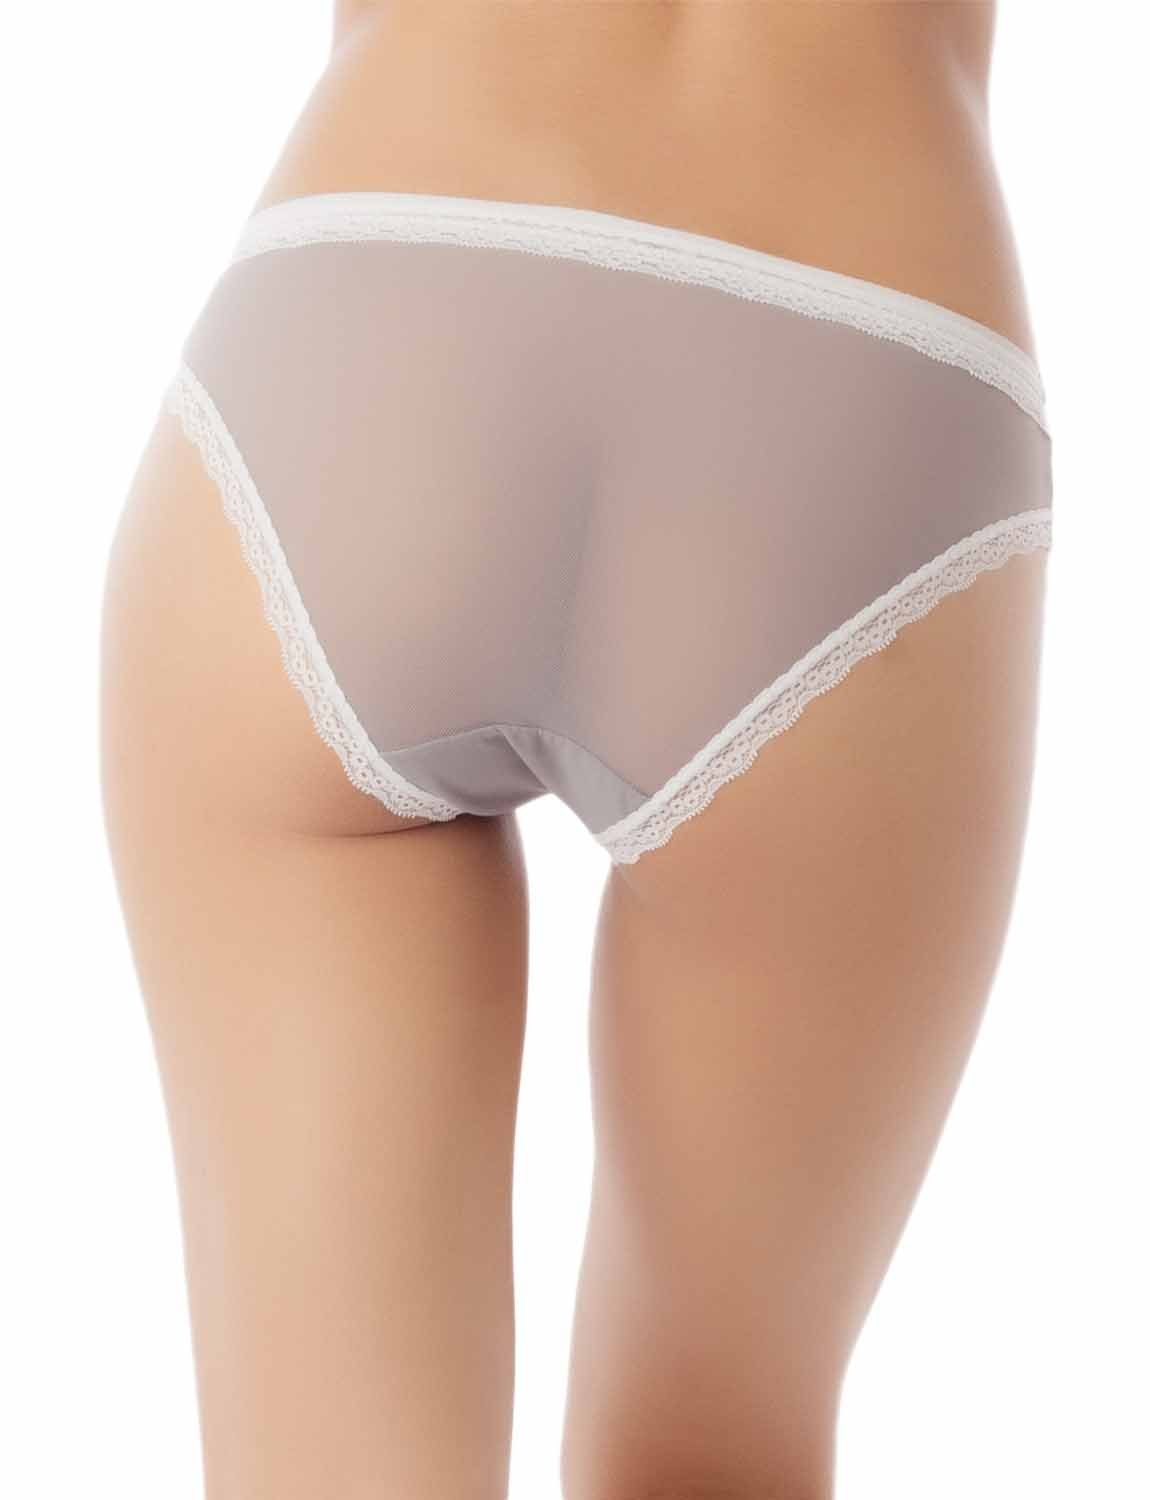 Women's Cotton Layered Lace Trimmed See-Through Mesh Low Rise Bikini Panty, Size: L, Light Grey